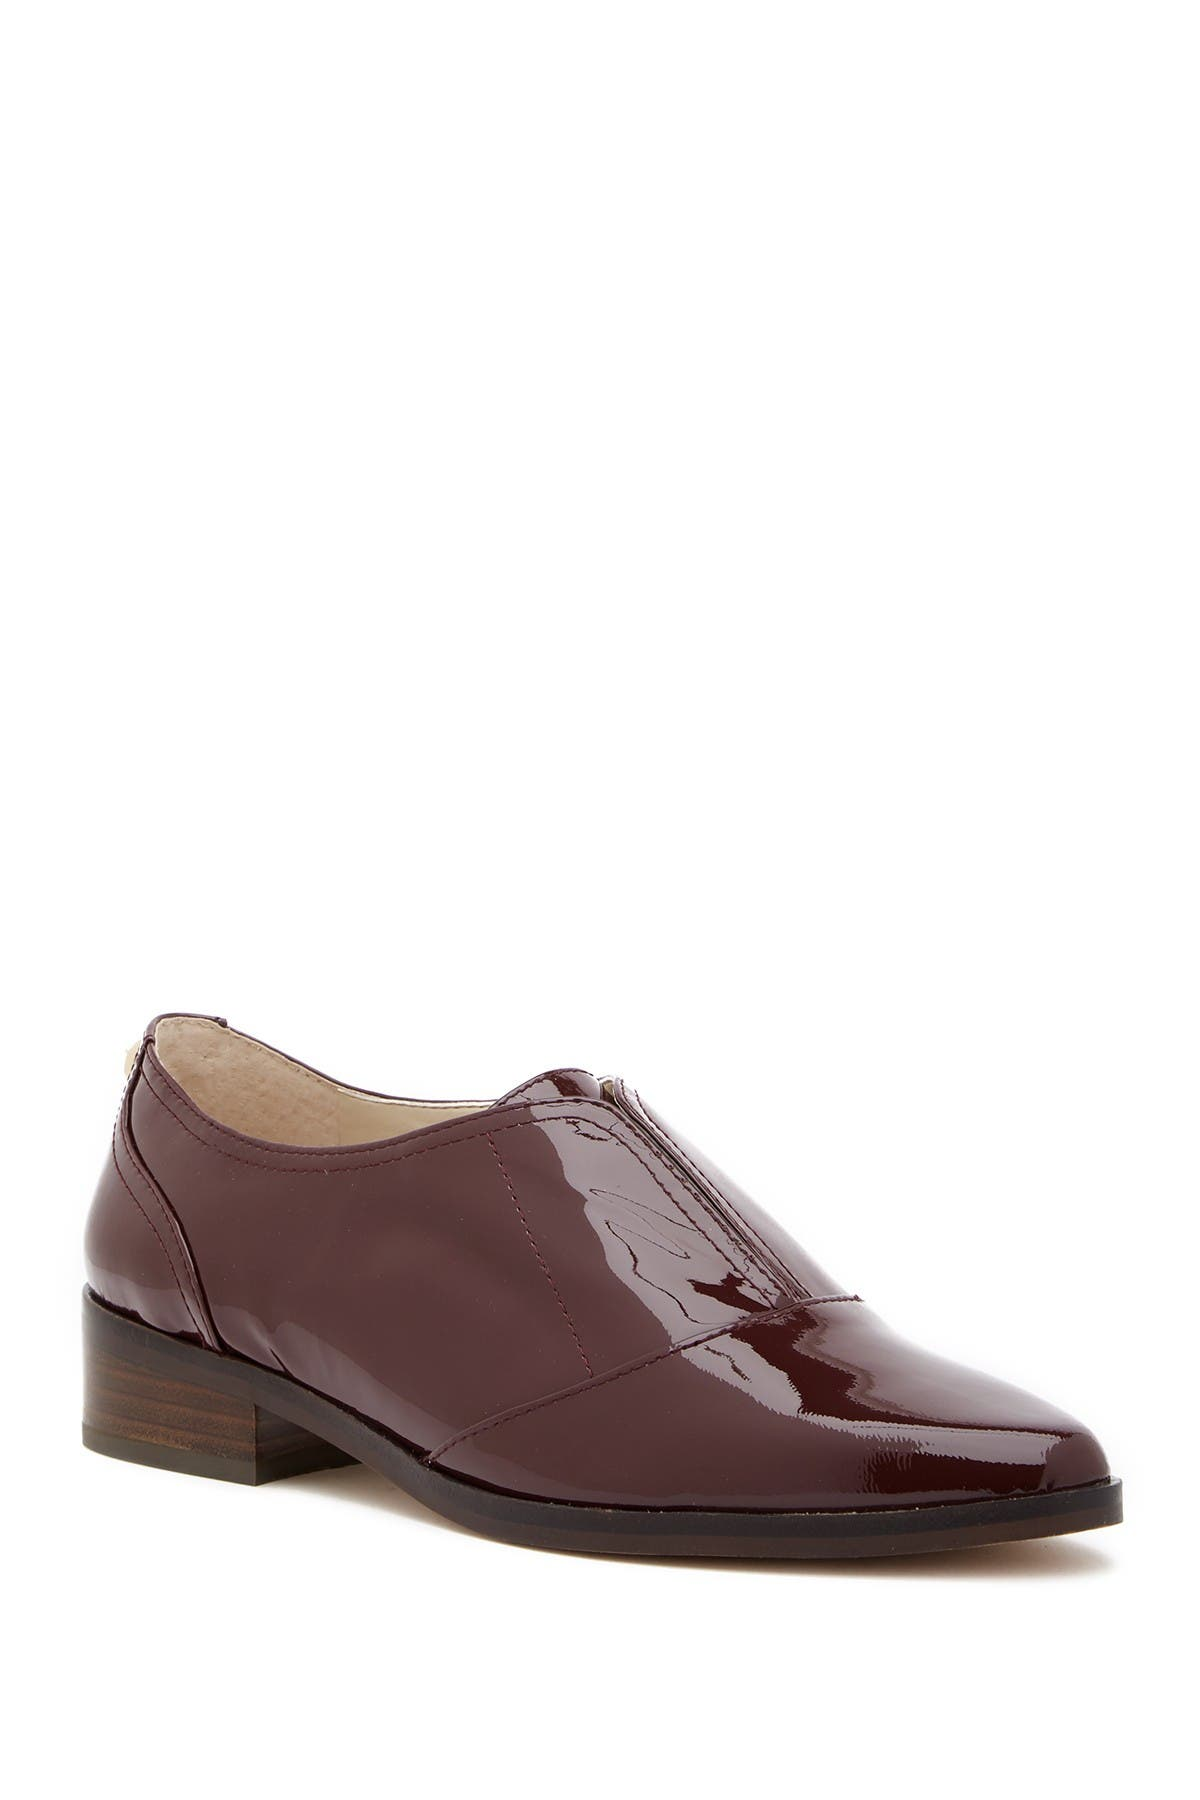 Image of Louise et Cie Aviana Leather Loafer